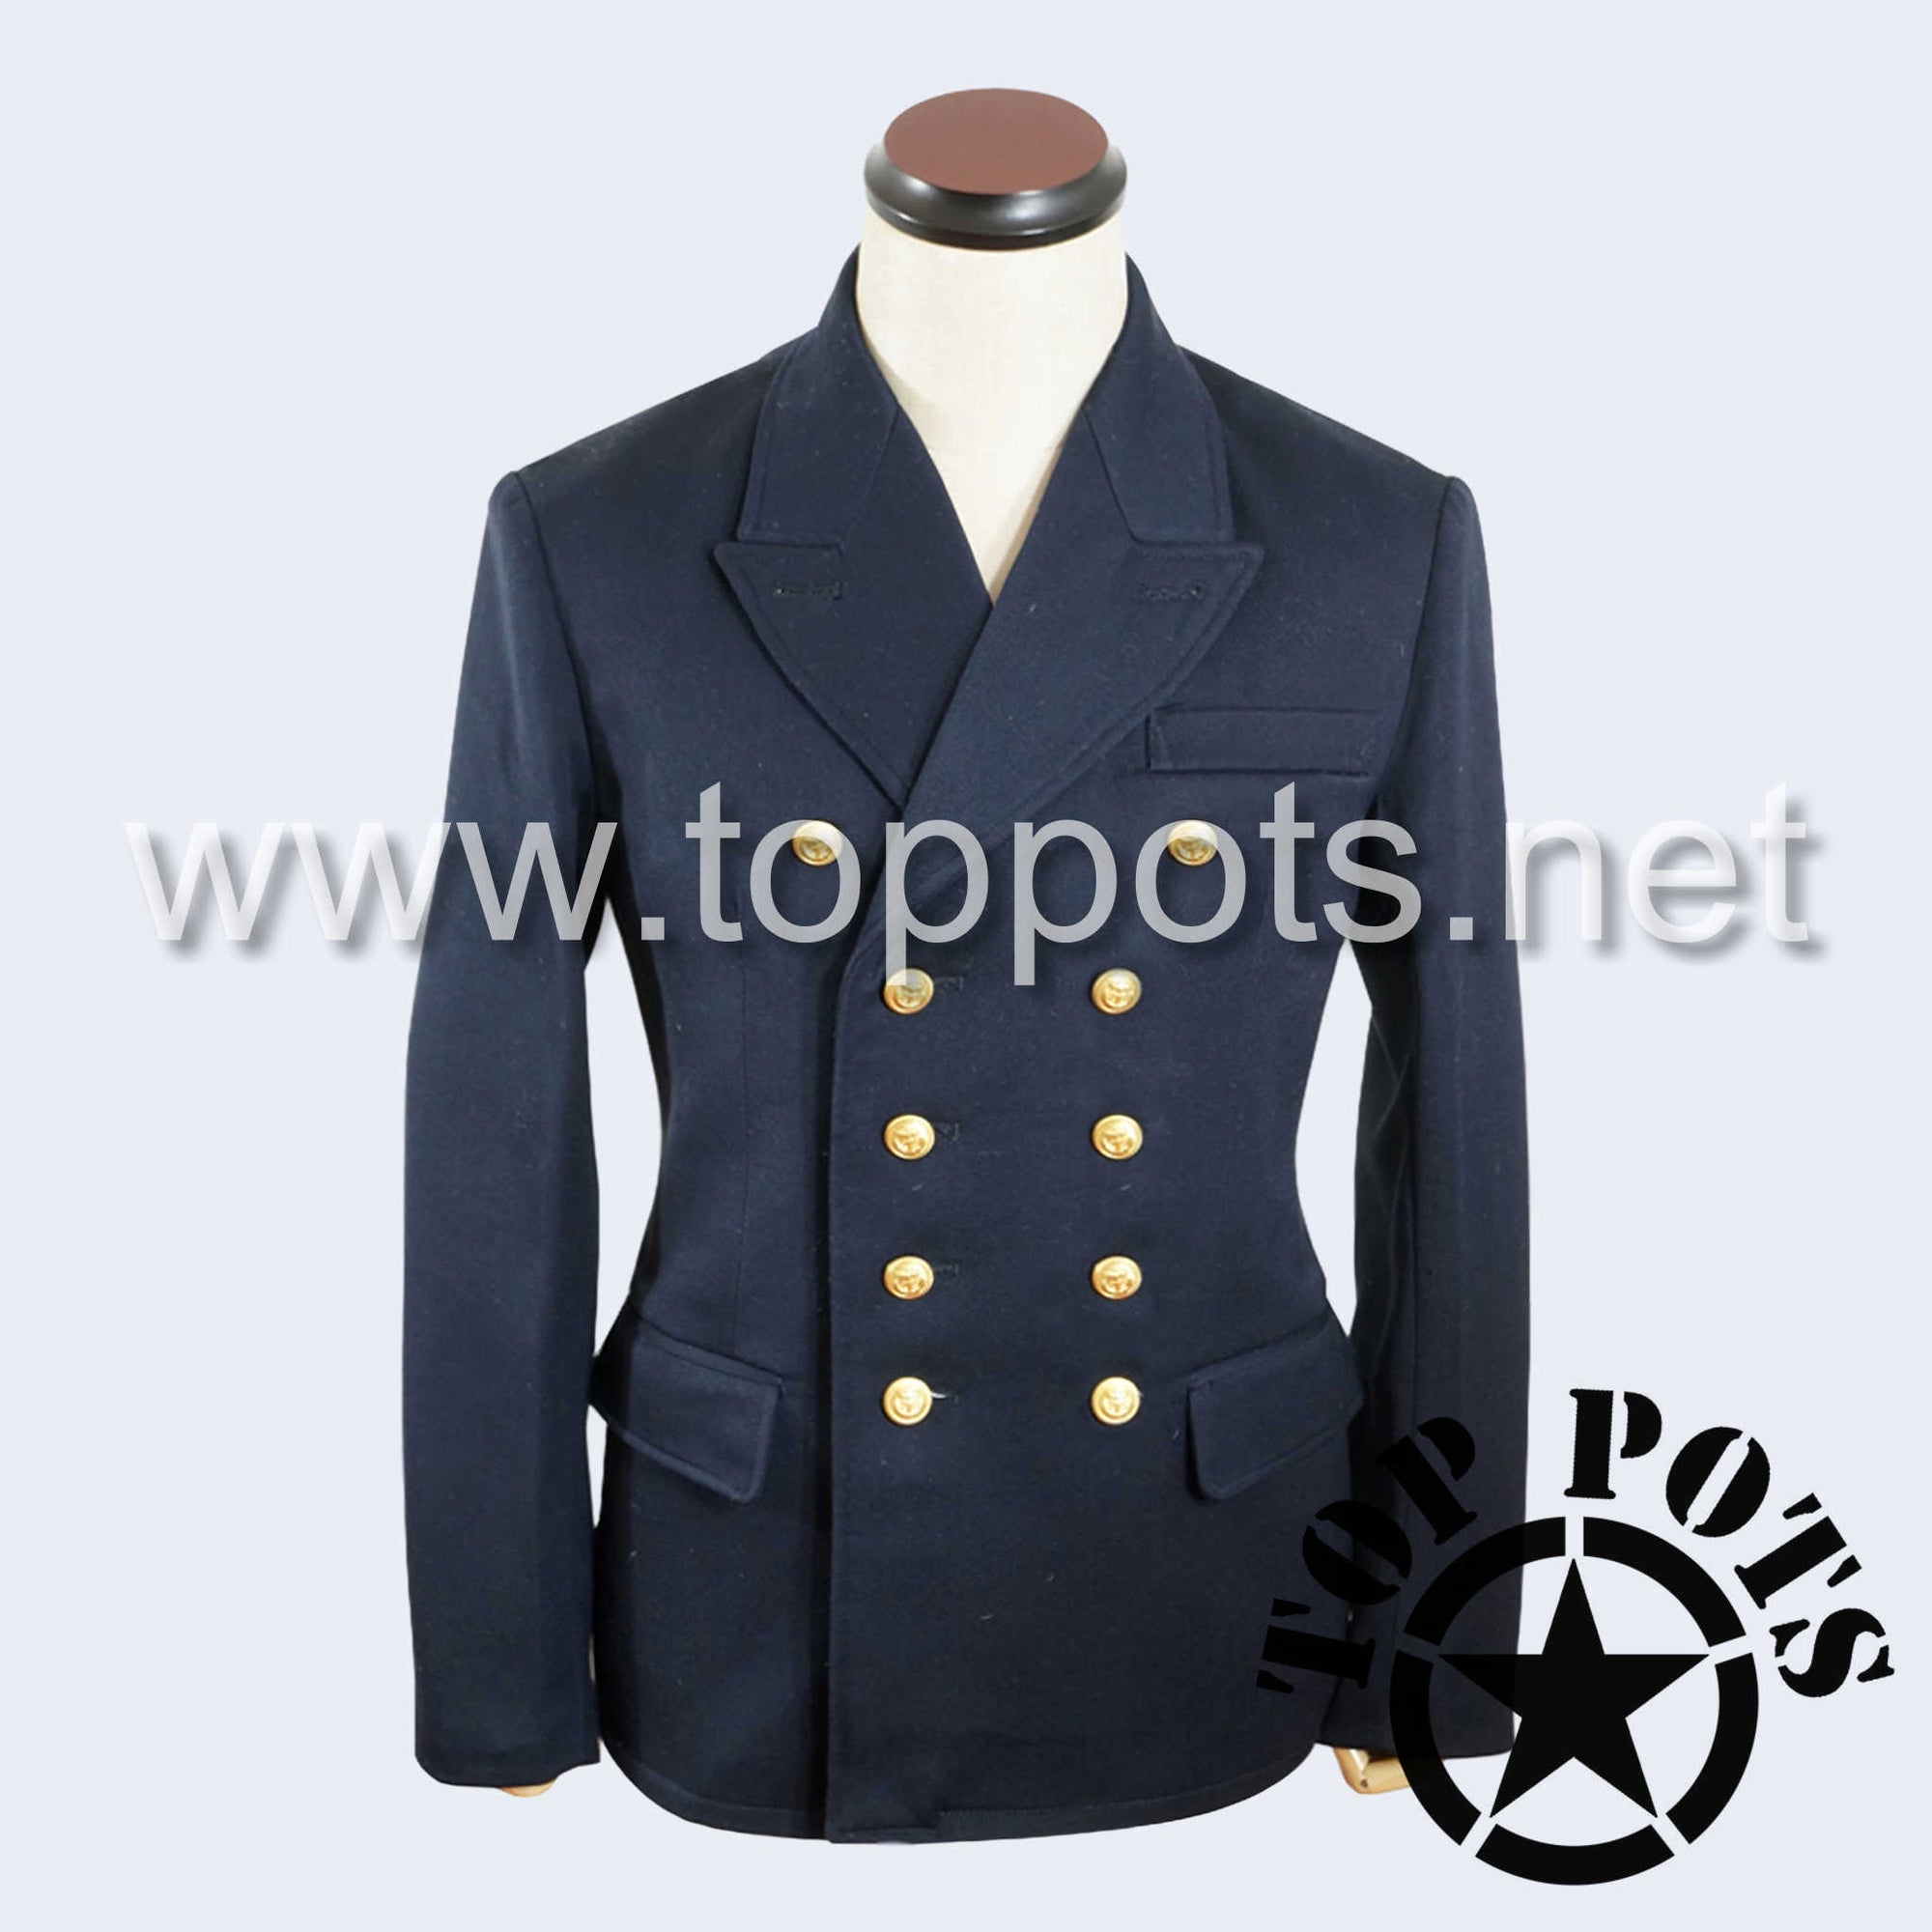 WWII German Navy Kriegsmarine Officer Uniform Jacket Pea Coat Navy Blue Wool - Officer Tunic